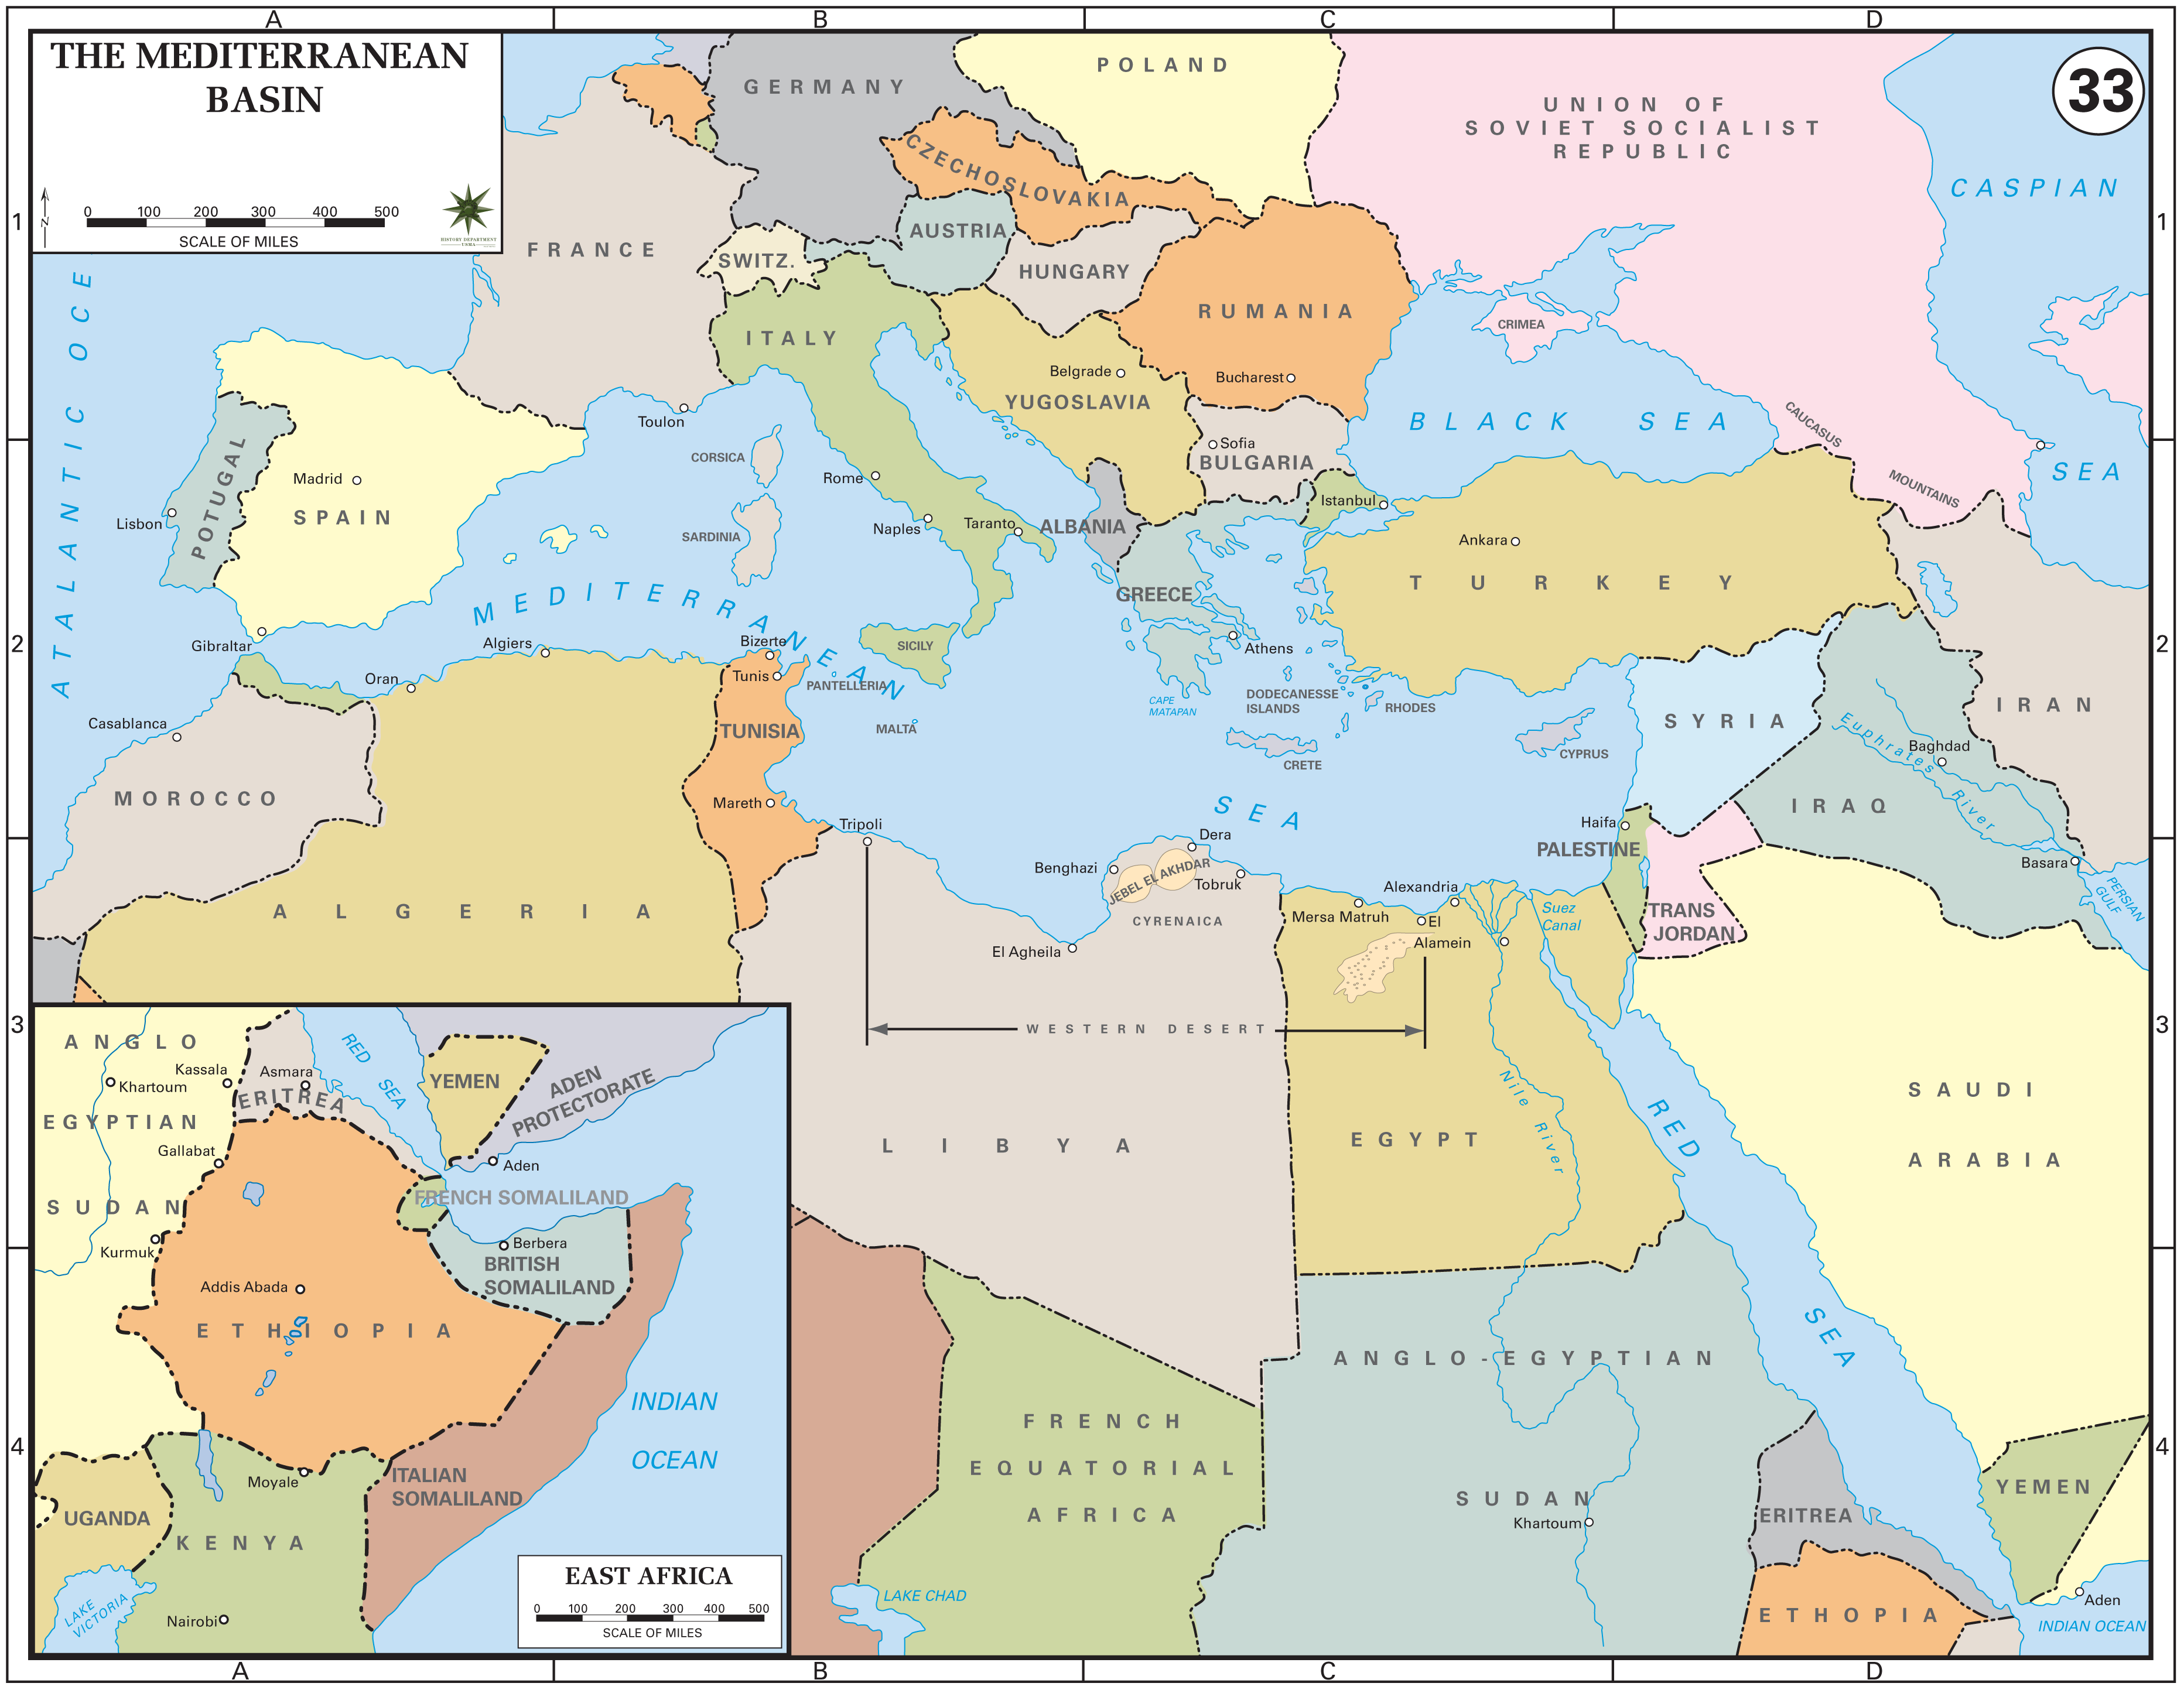 The Mediterranean Basin, 1939